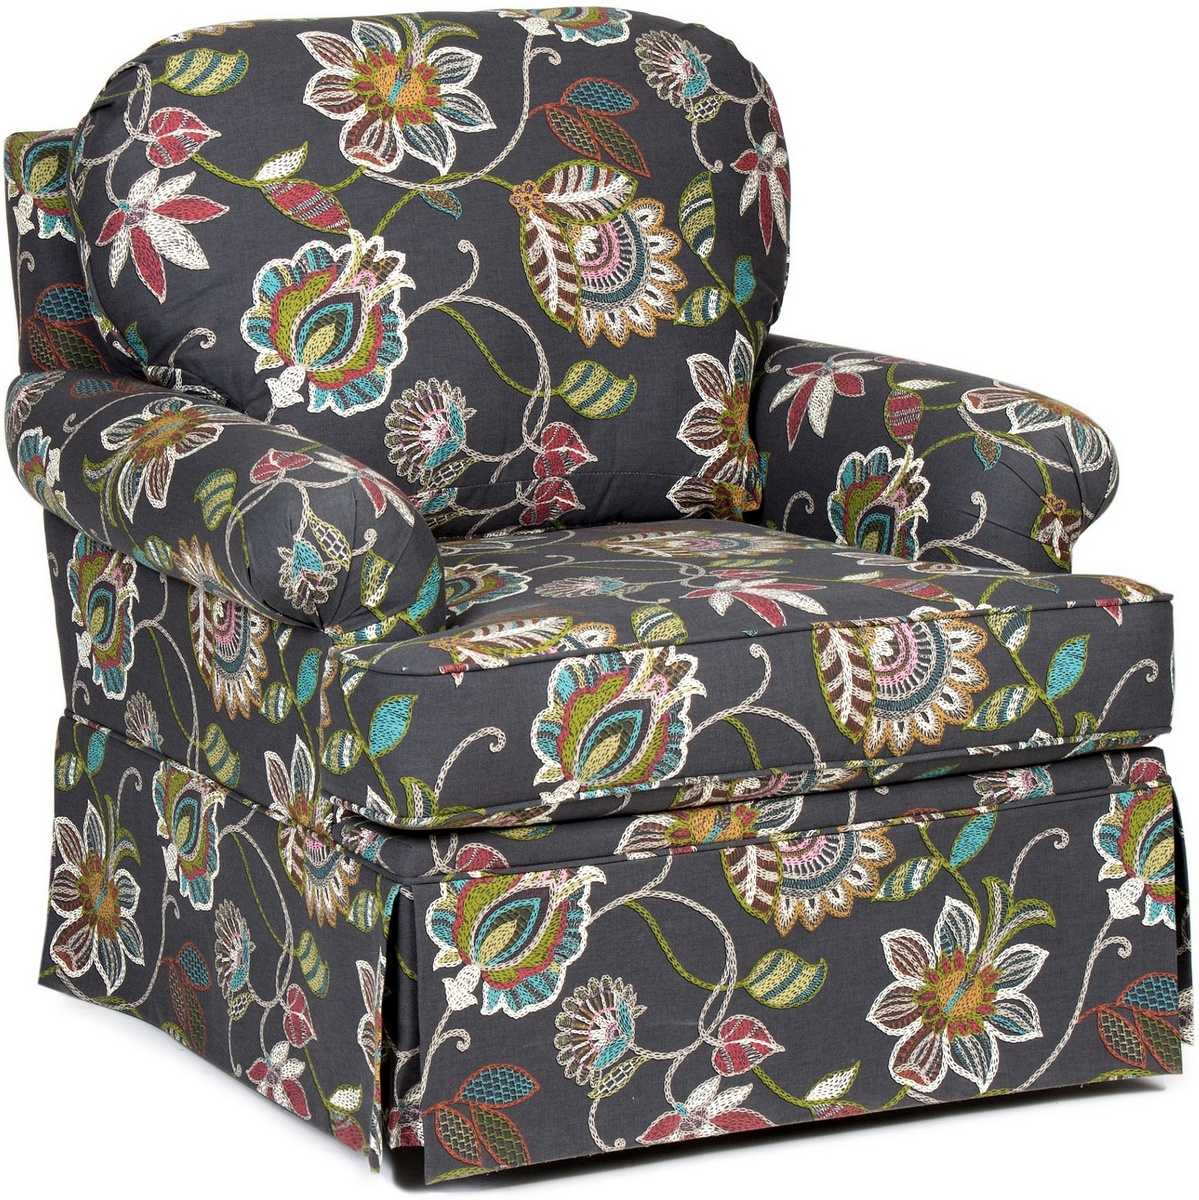 Chelsea Home Groton Swivel Rocker Arm Chair Matador Rainbow